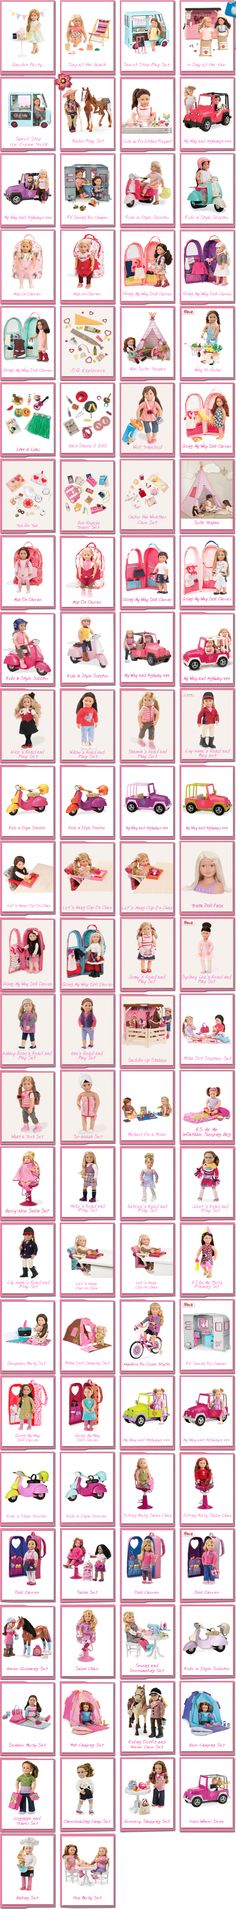 Fun and Adventure | Our Generation Dolls